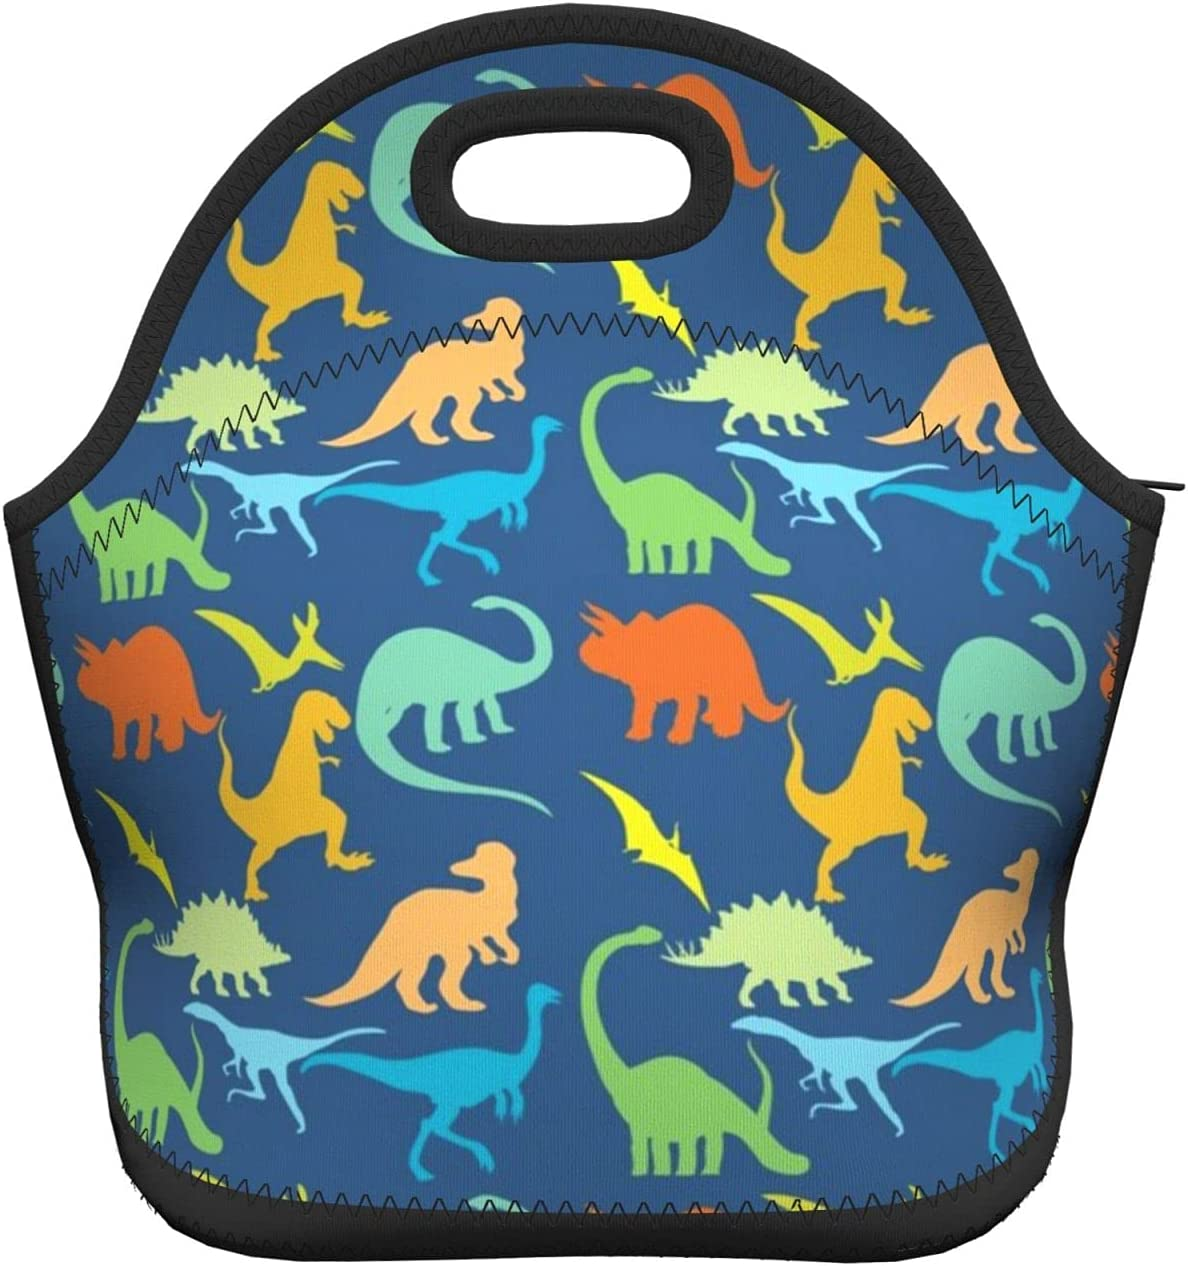 Colorful Cute Dinosaur Lunch Bag Boxes Tote Insulated Reusable Durable Zipper Travel Bag For Kids School Supplies